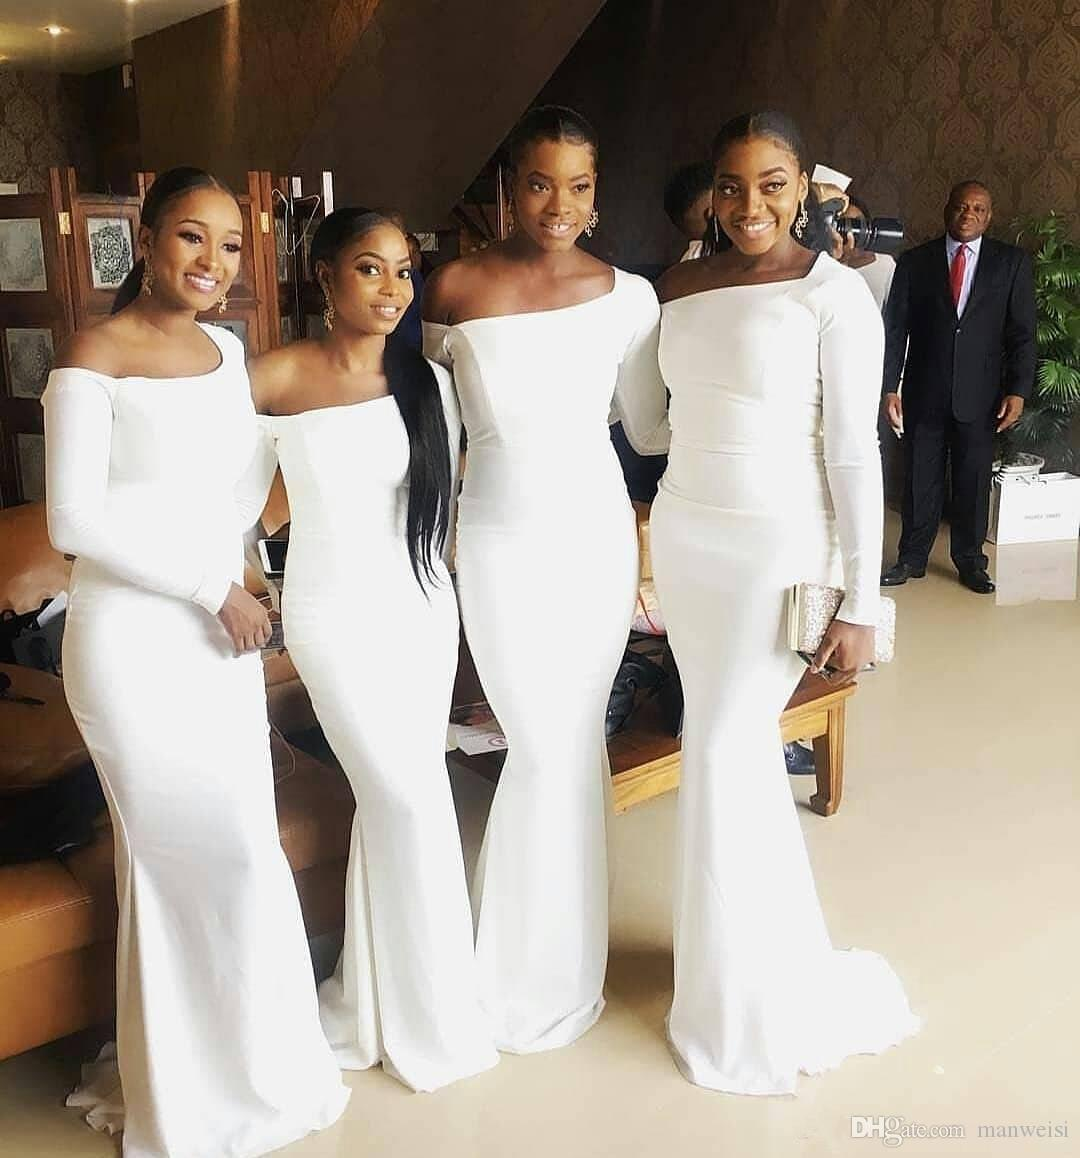 48a279762a Latest White Mermaid Bridesmaids Dresses 2019 Plus Size South African  Wedding Guest Party Evening Gowns Long Sleeves Maid of Honor Dress